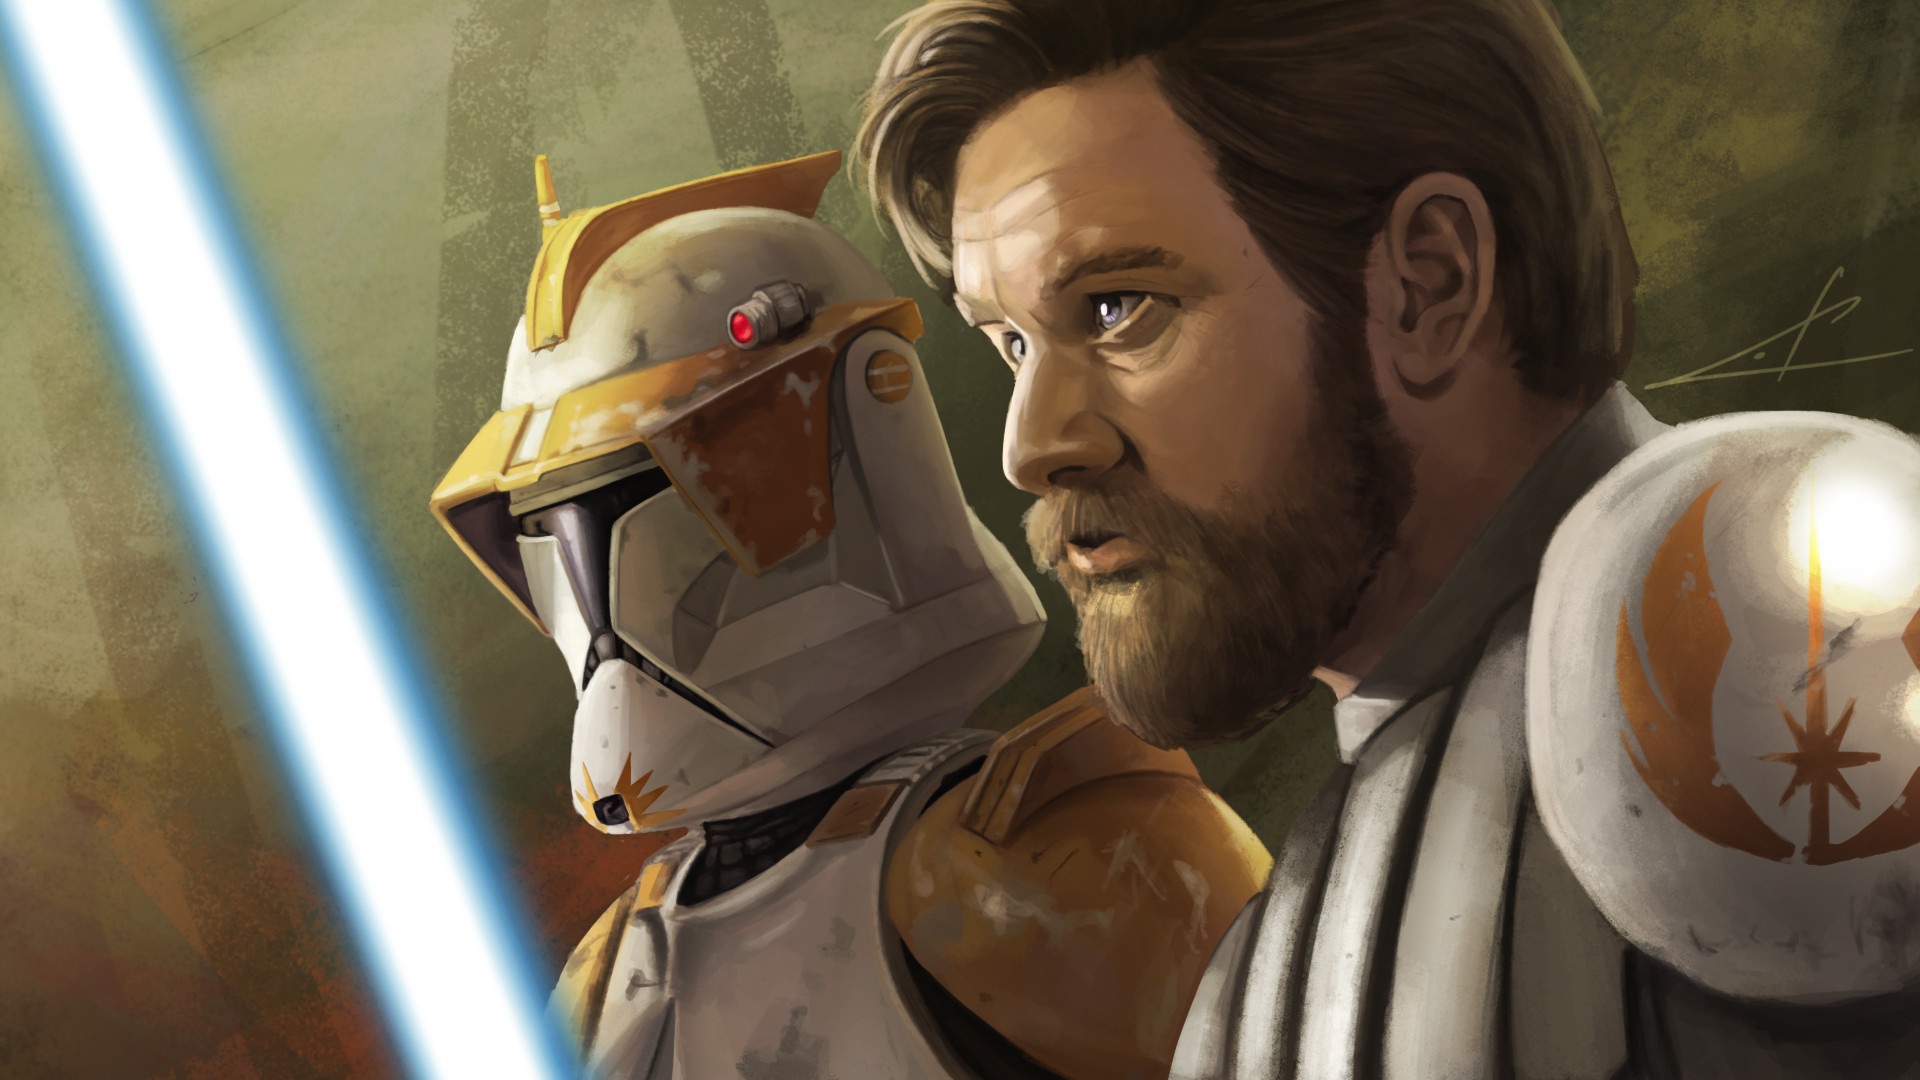 Clone Wars Wallpaper Hd Artstation Obi Wan Kenobi And Commander Cody Star Wars